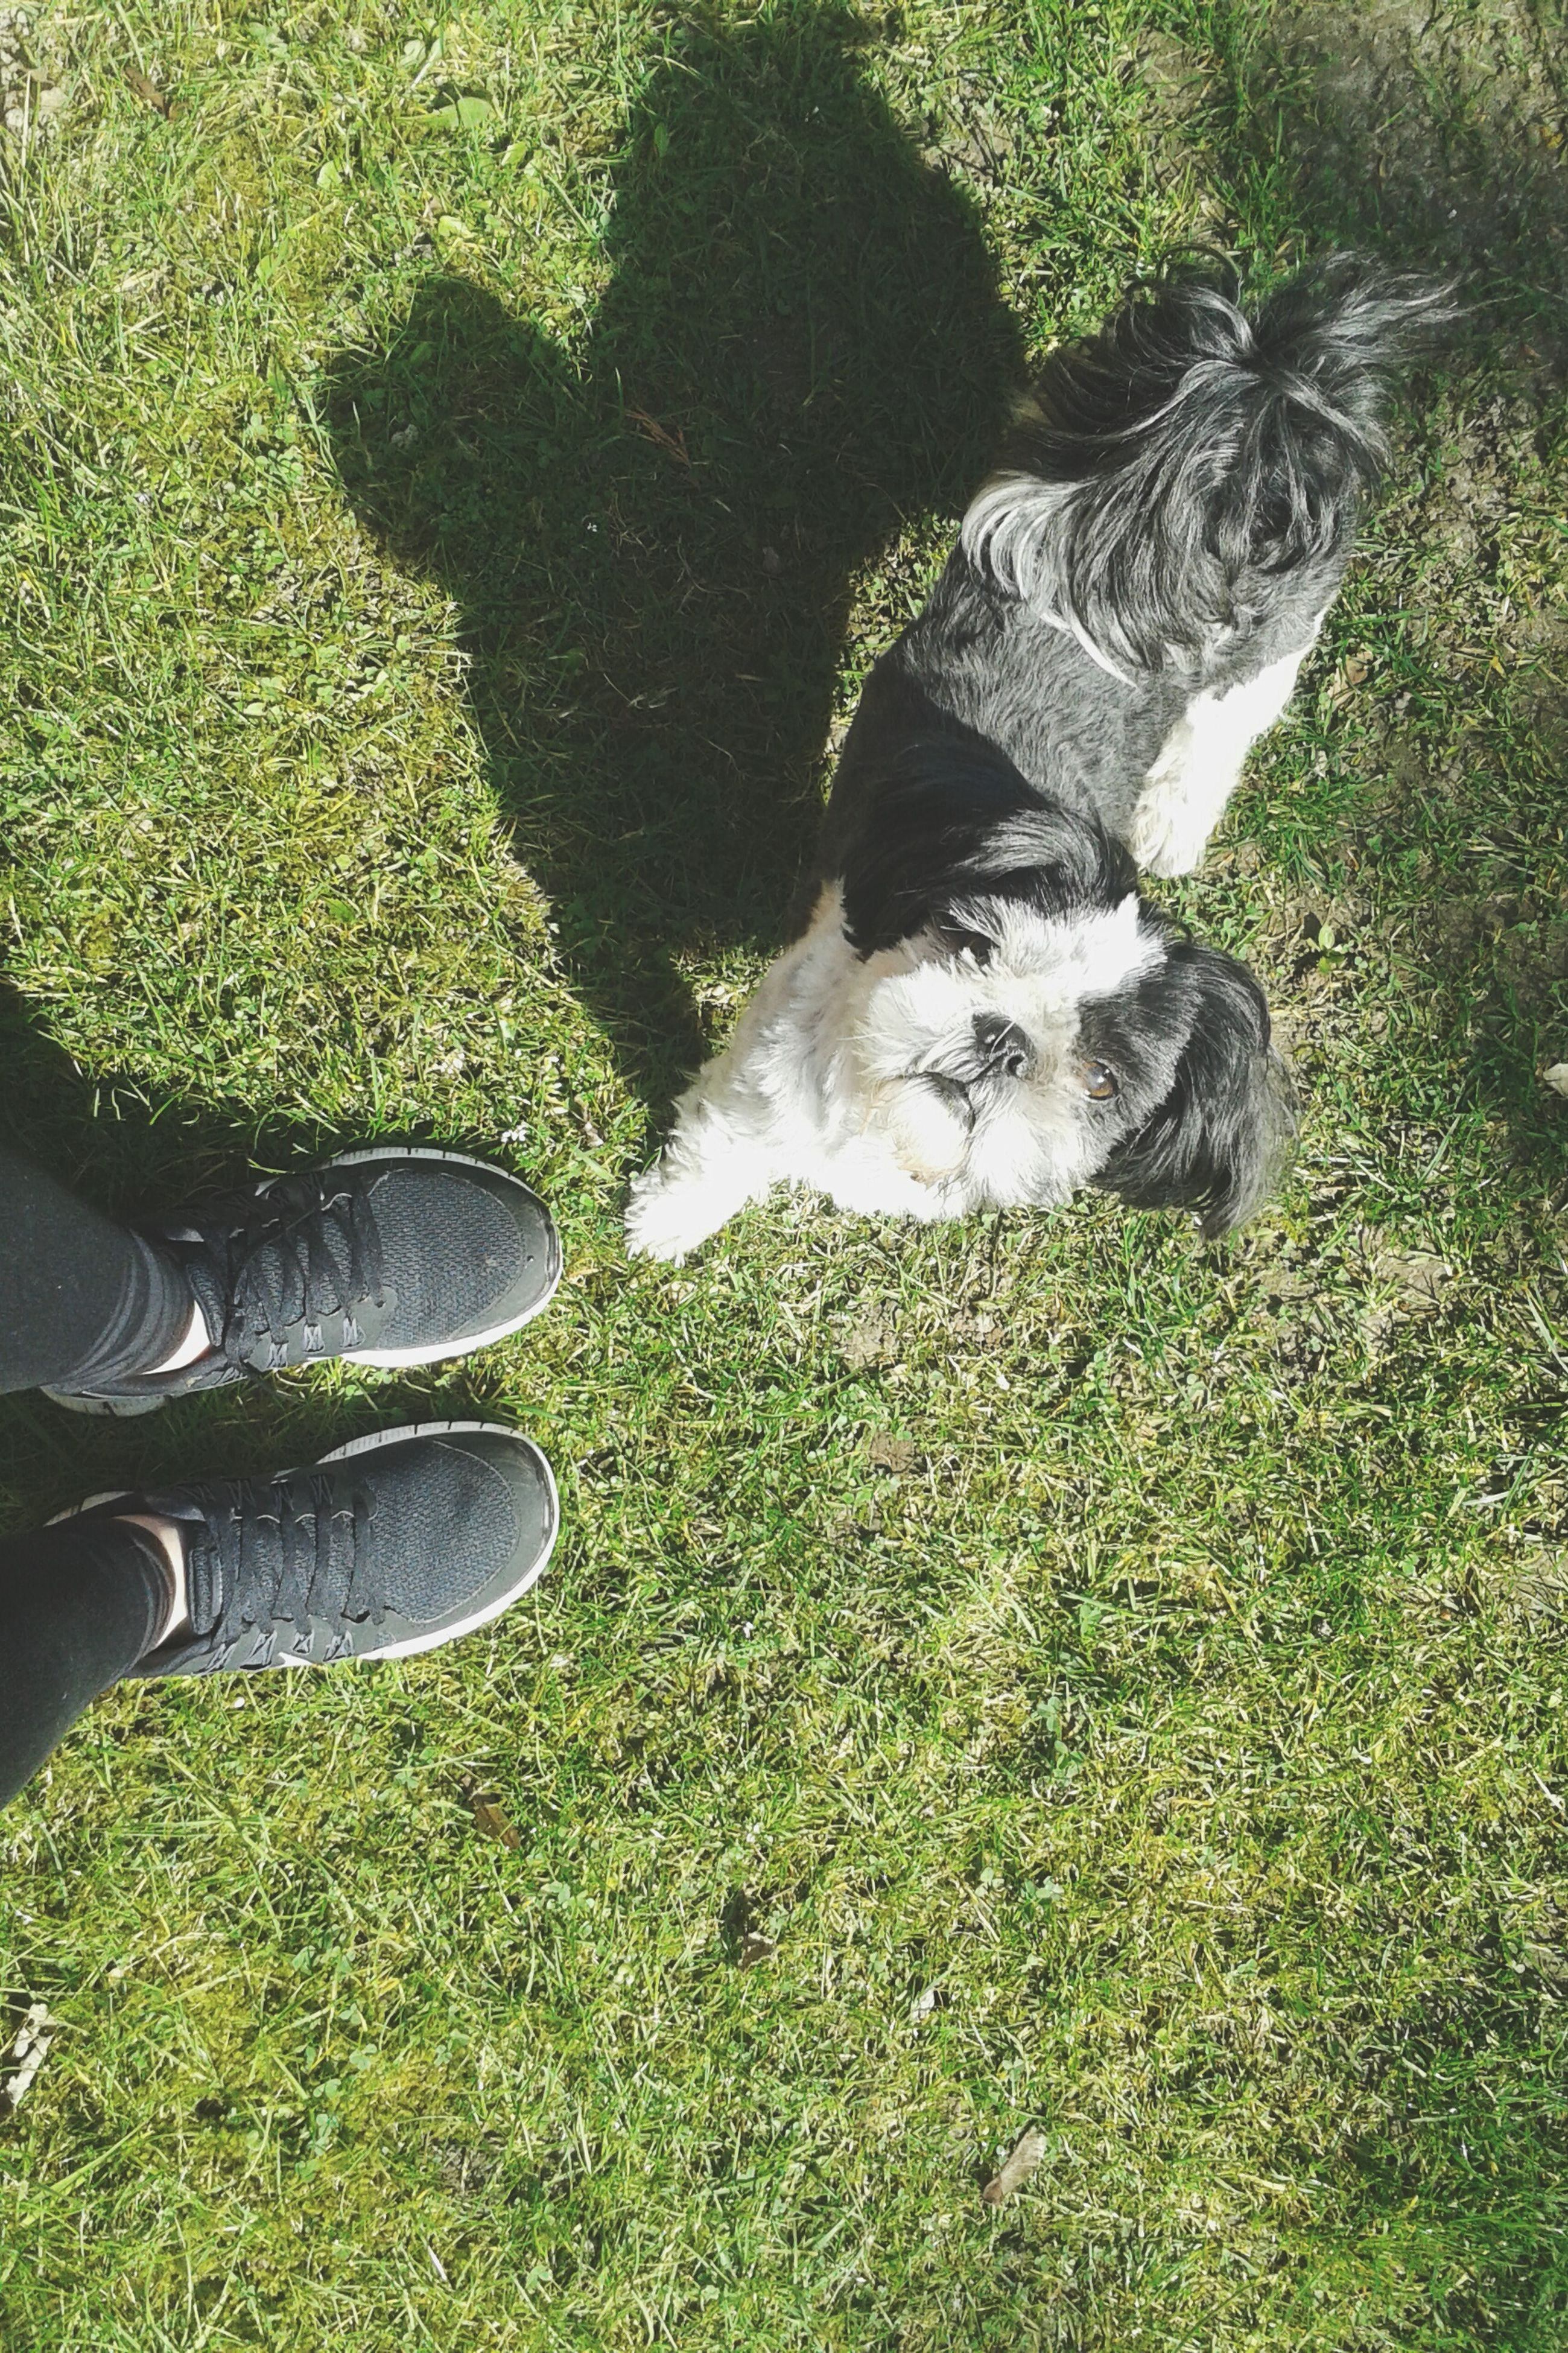 grass, low section, shoe, person, domestic animals, grassy, animal themes, field, high angle view, one animal, mammal, pets, personal perspective, unrecognizable person, standing, lifestyles, relaxation